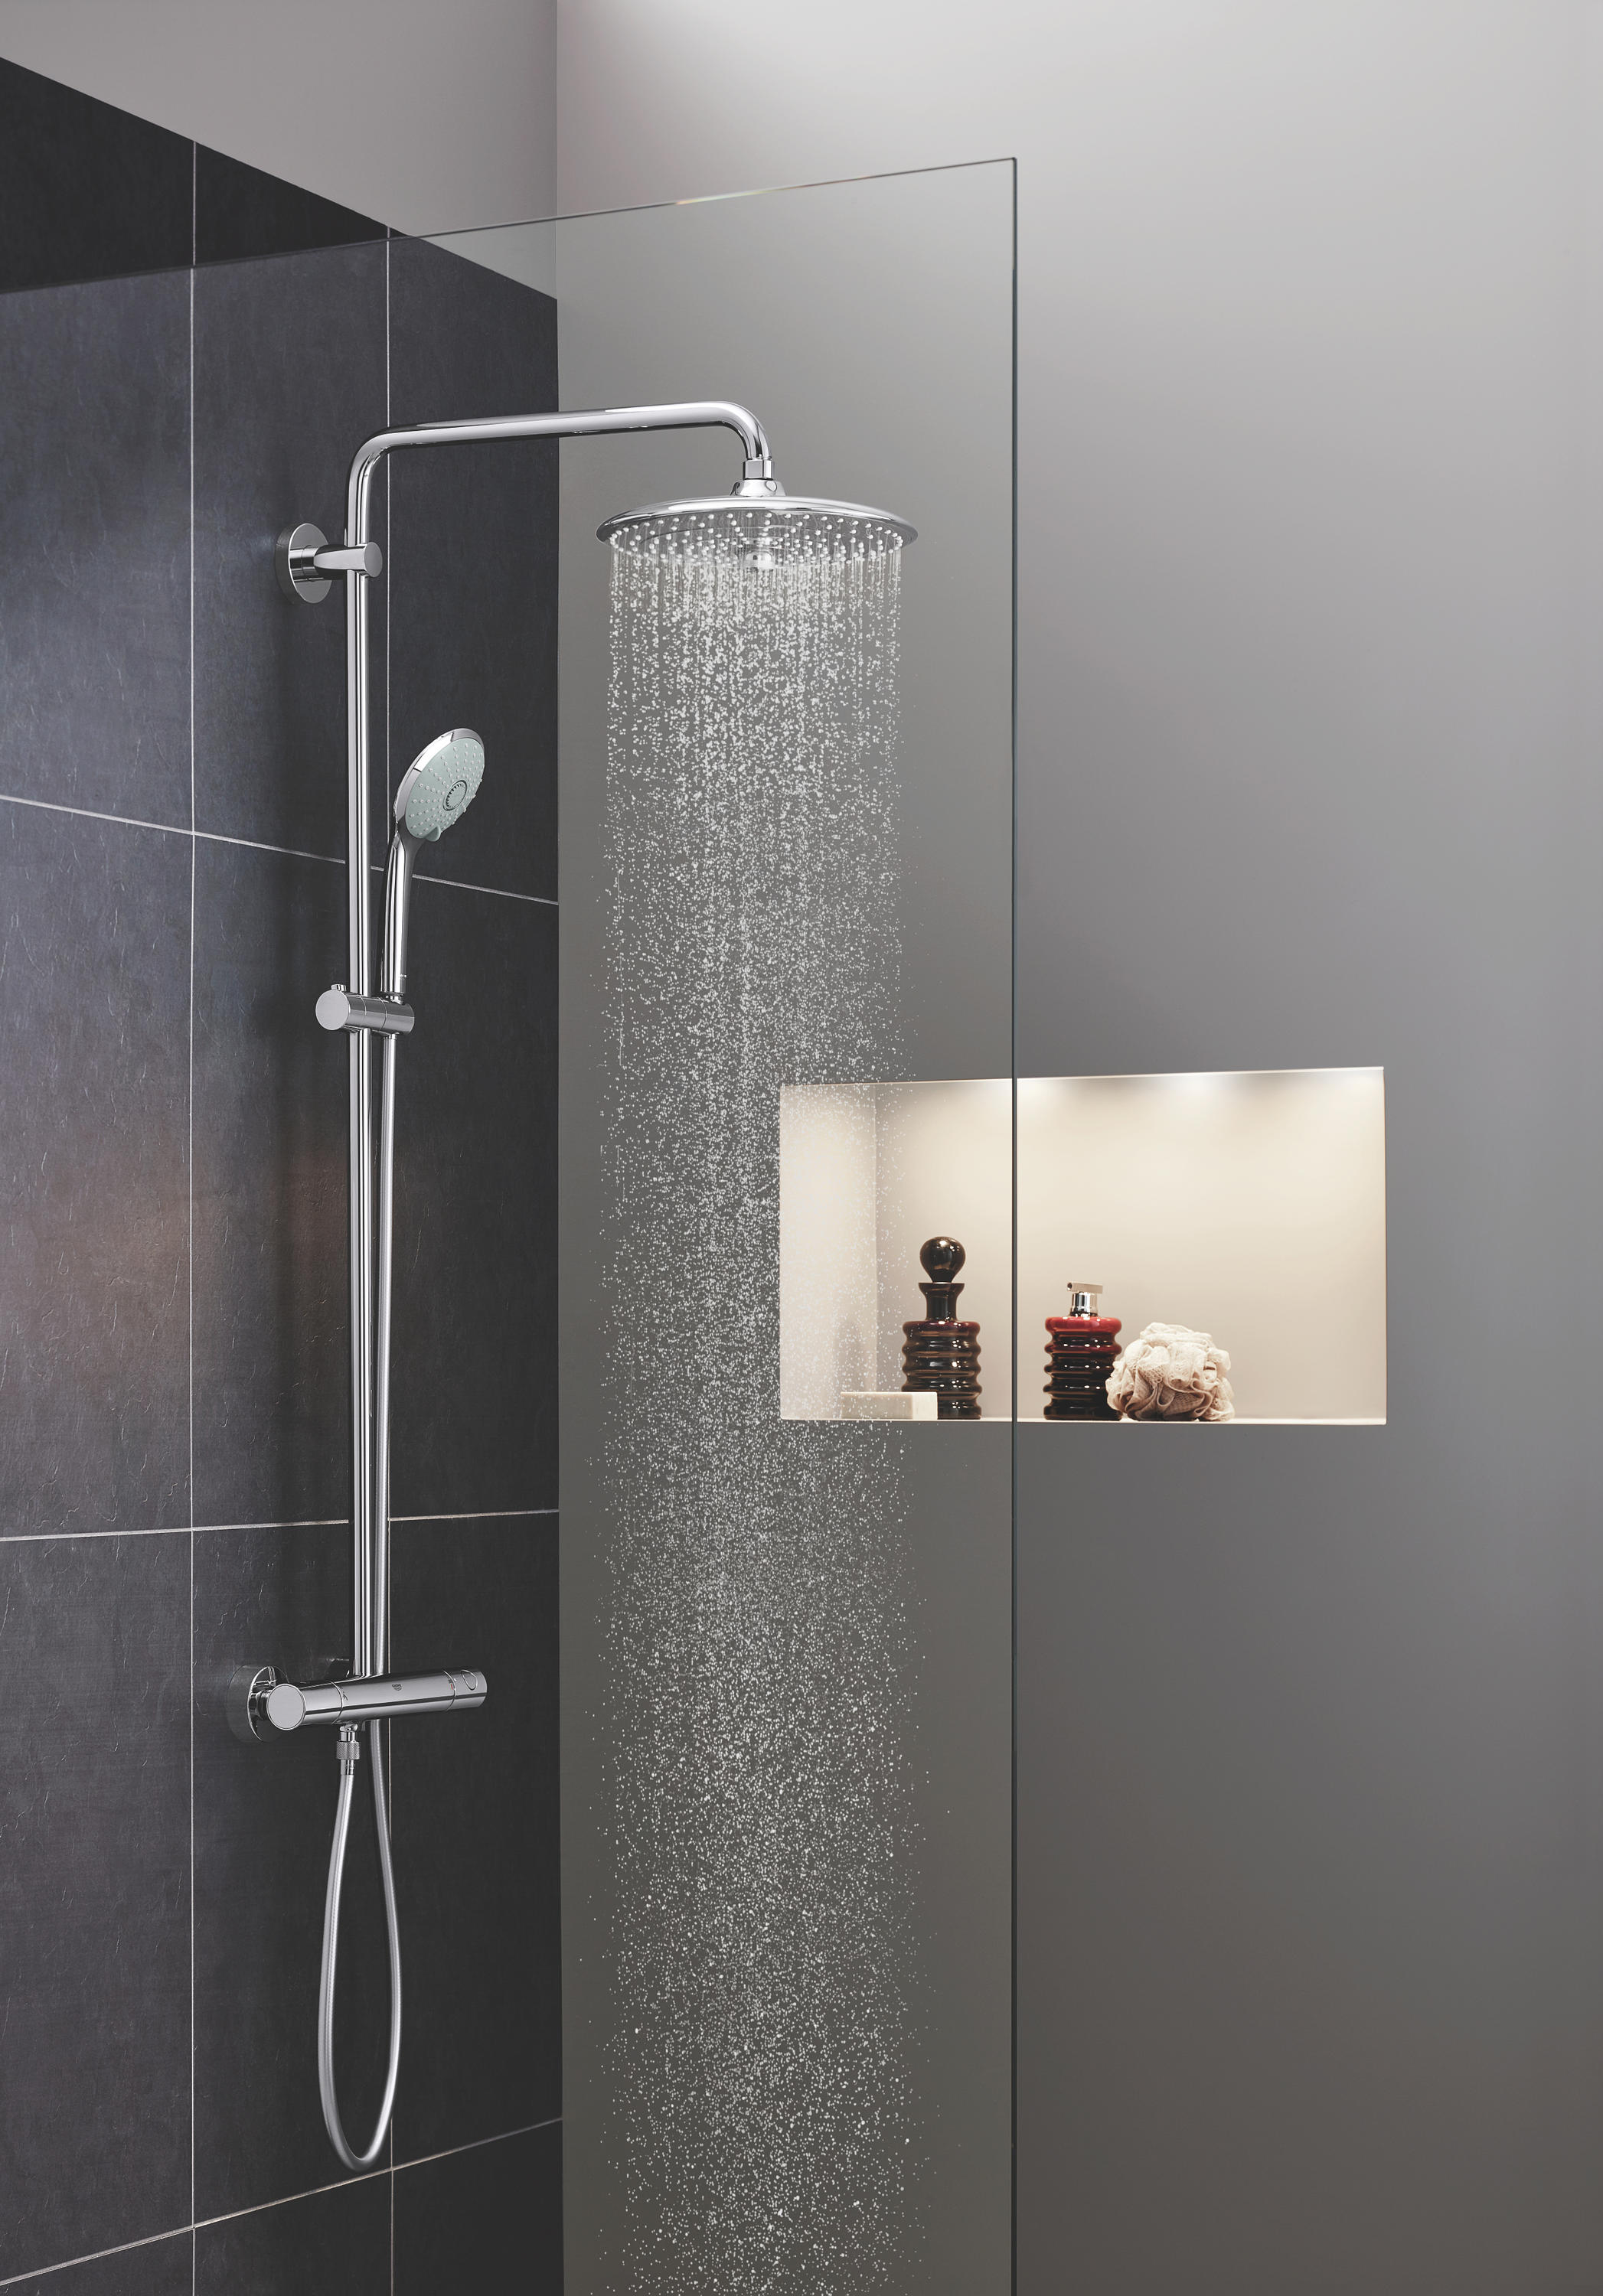 commitment system bathroom shower brand to pin illustrate values creating exceptional that experiences on inspiration s pinterest caracalla four by grohe